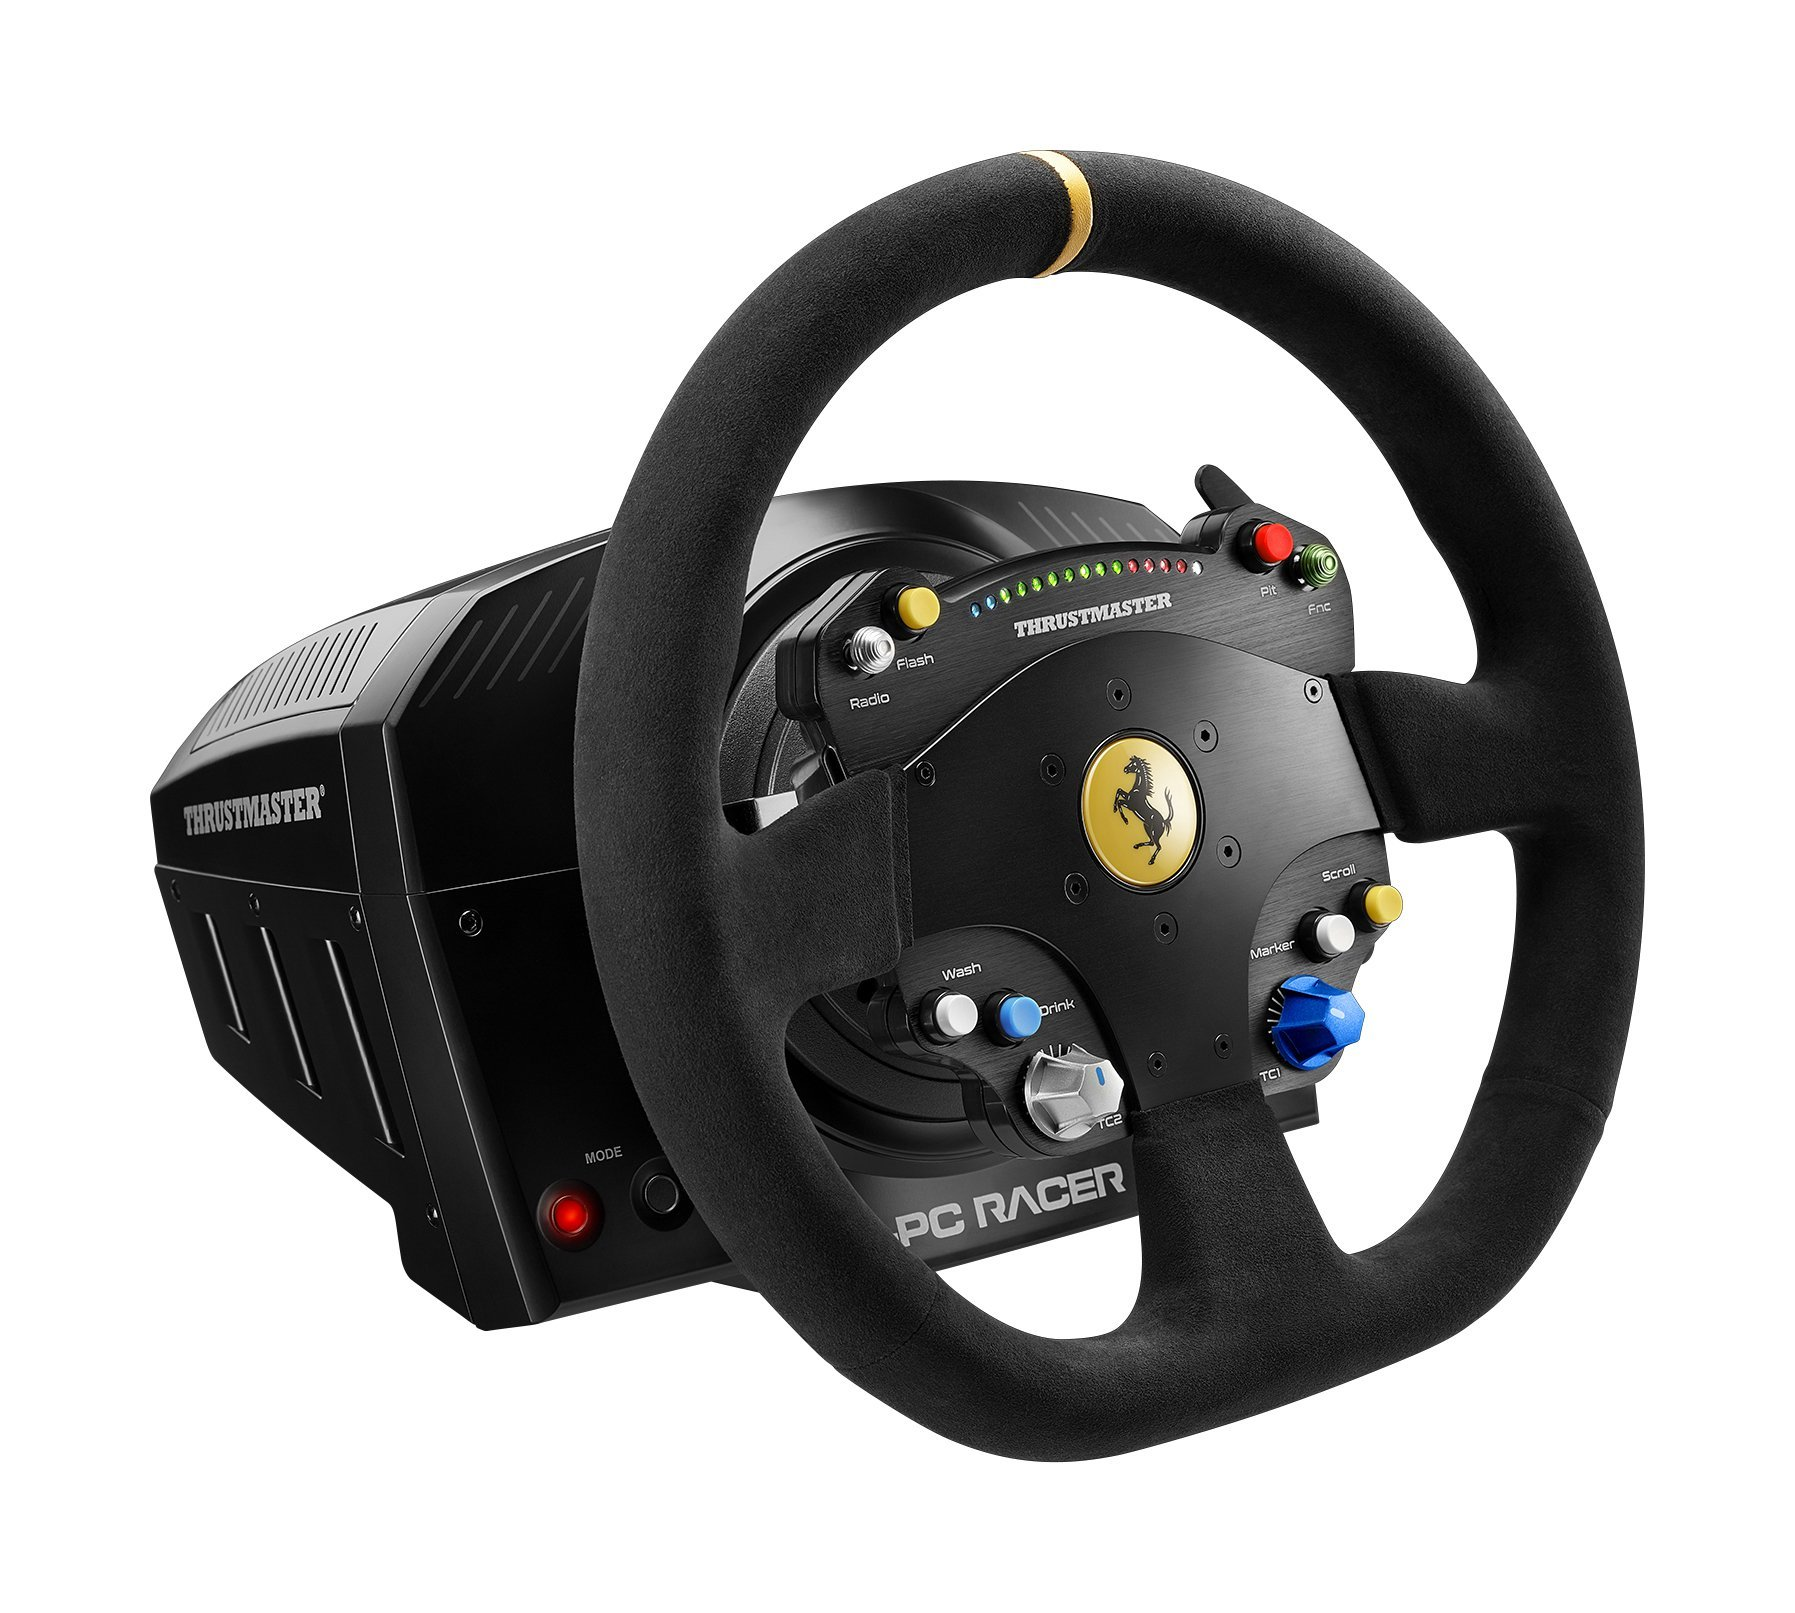 thrustmaster ts pc racer ferrari 488 challenge edition wheel announced inside sim racing. Black Bedroom Furniture Sets. Home Design Ideas